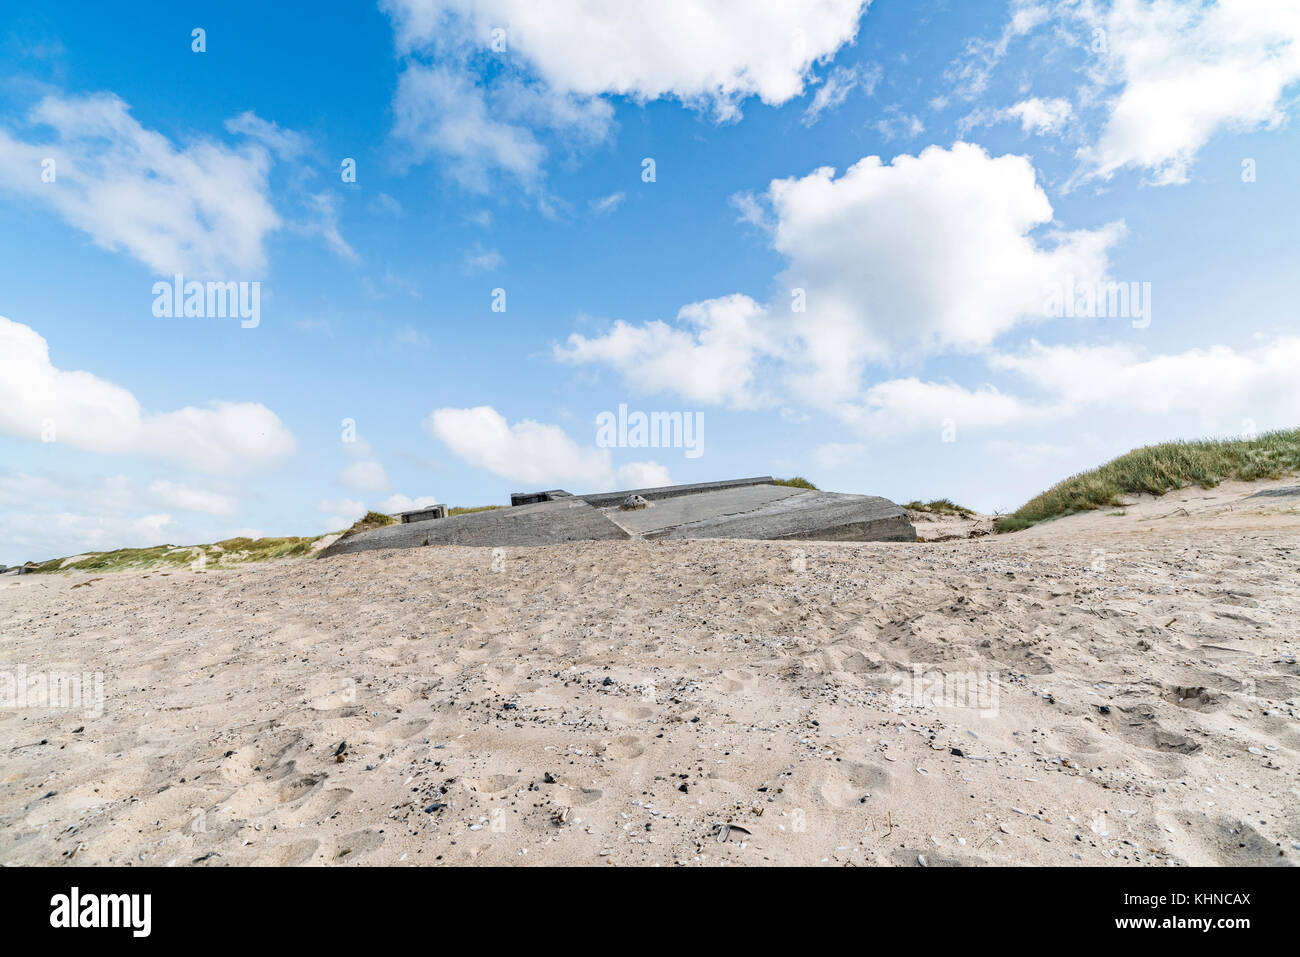 German bunkers burried in a sand dune on a beach by the northern sea in Denmark - Stock Image